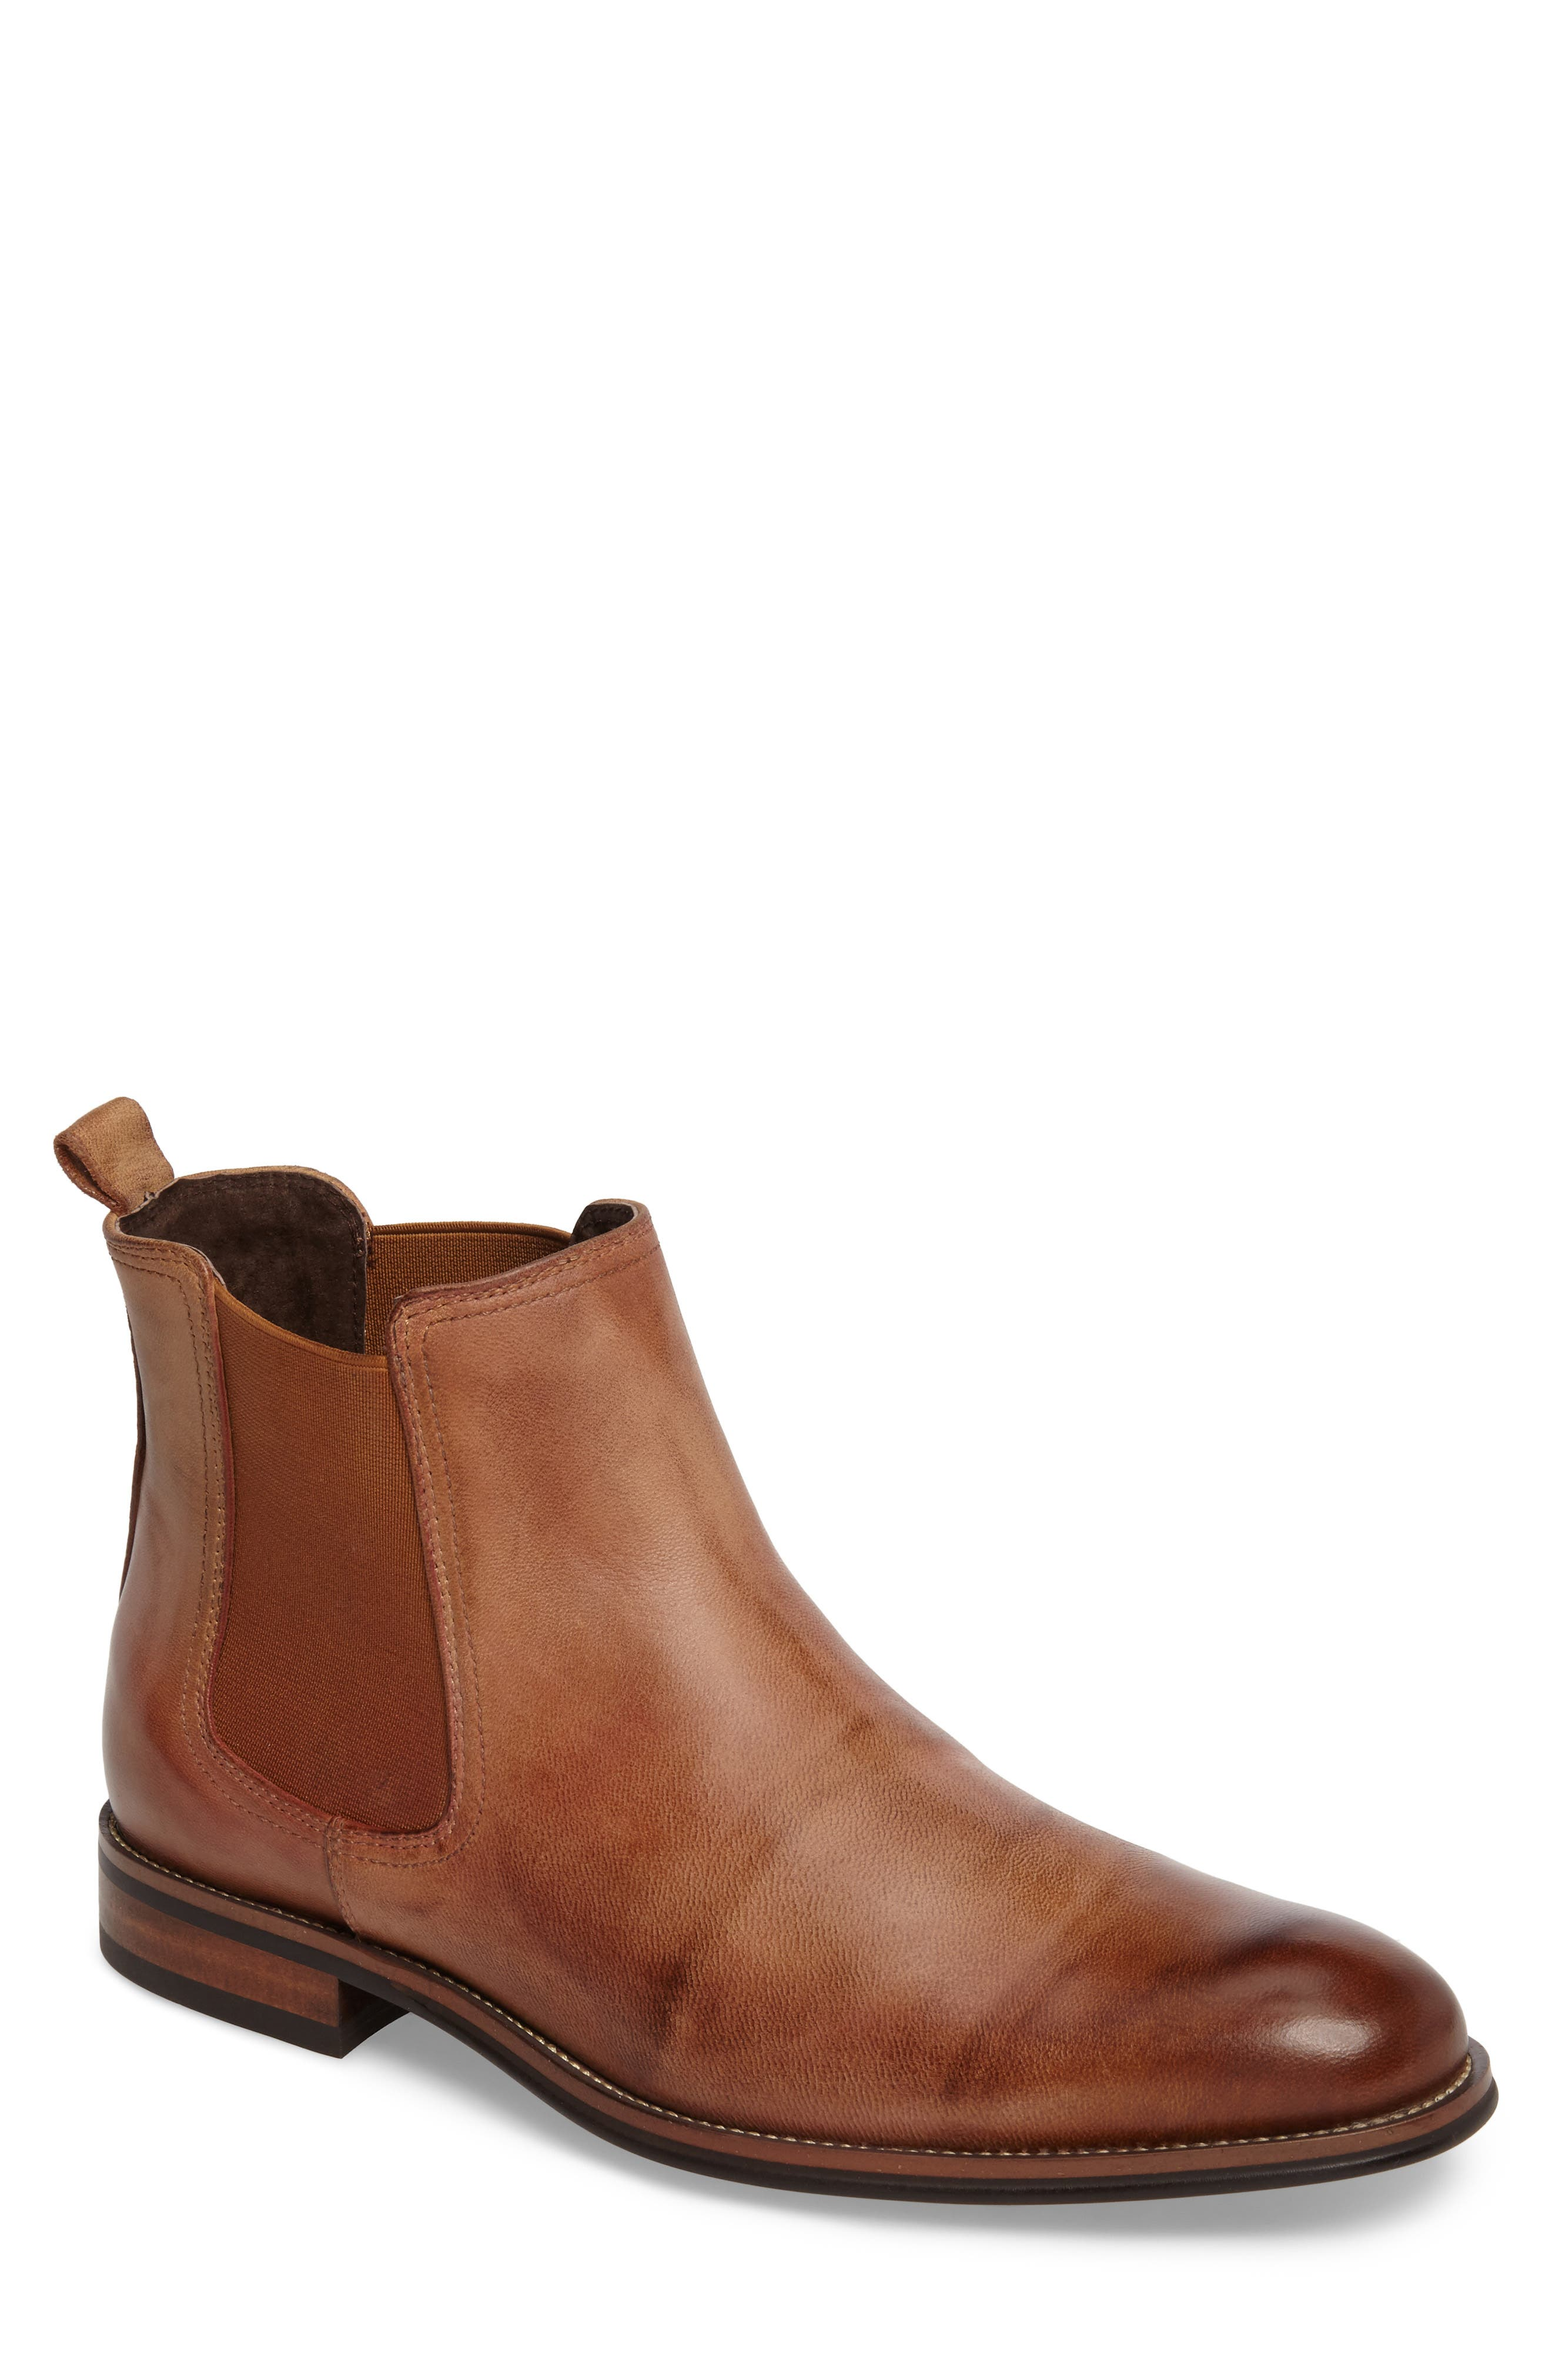 Jump Lawson Chelsea Boot, Brown